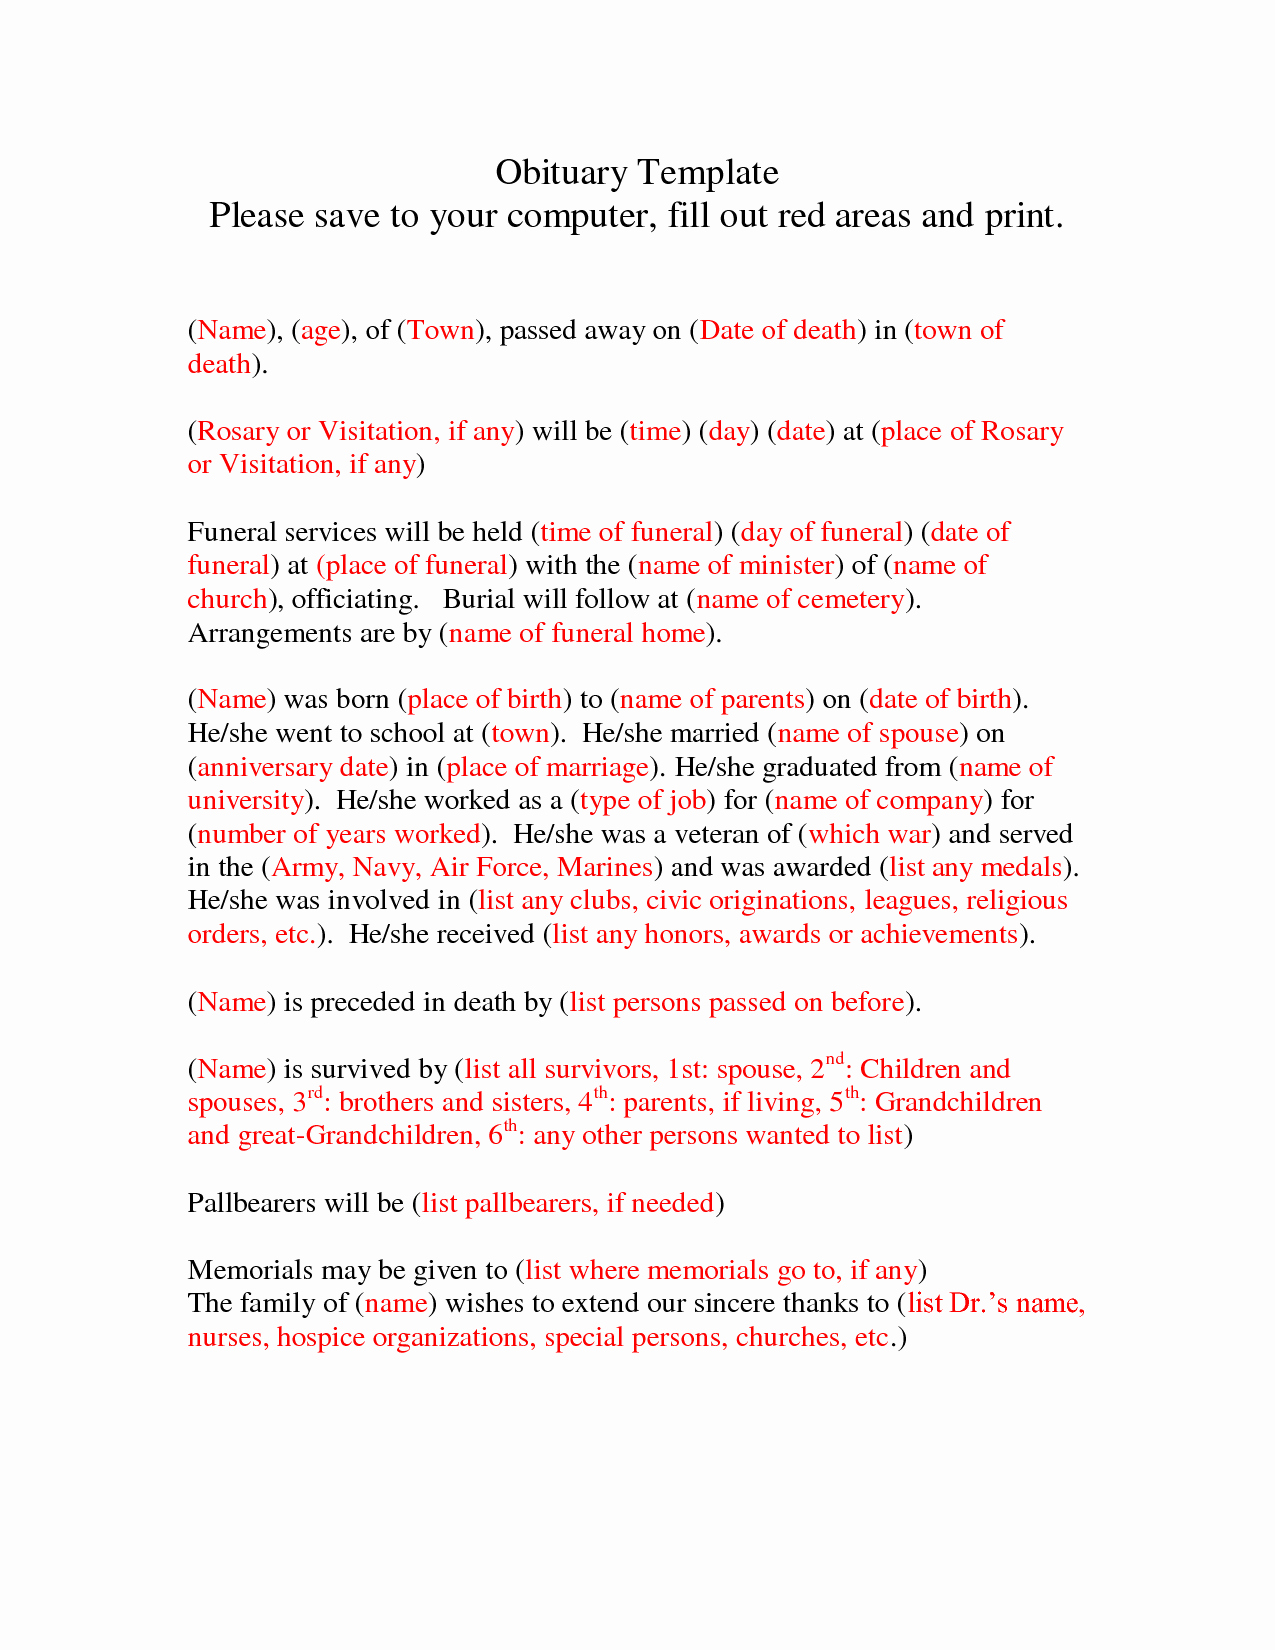 10 Best Of Obituary Template for Printing Free